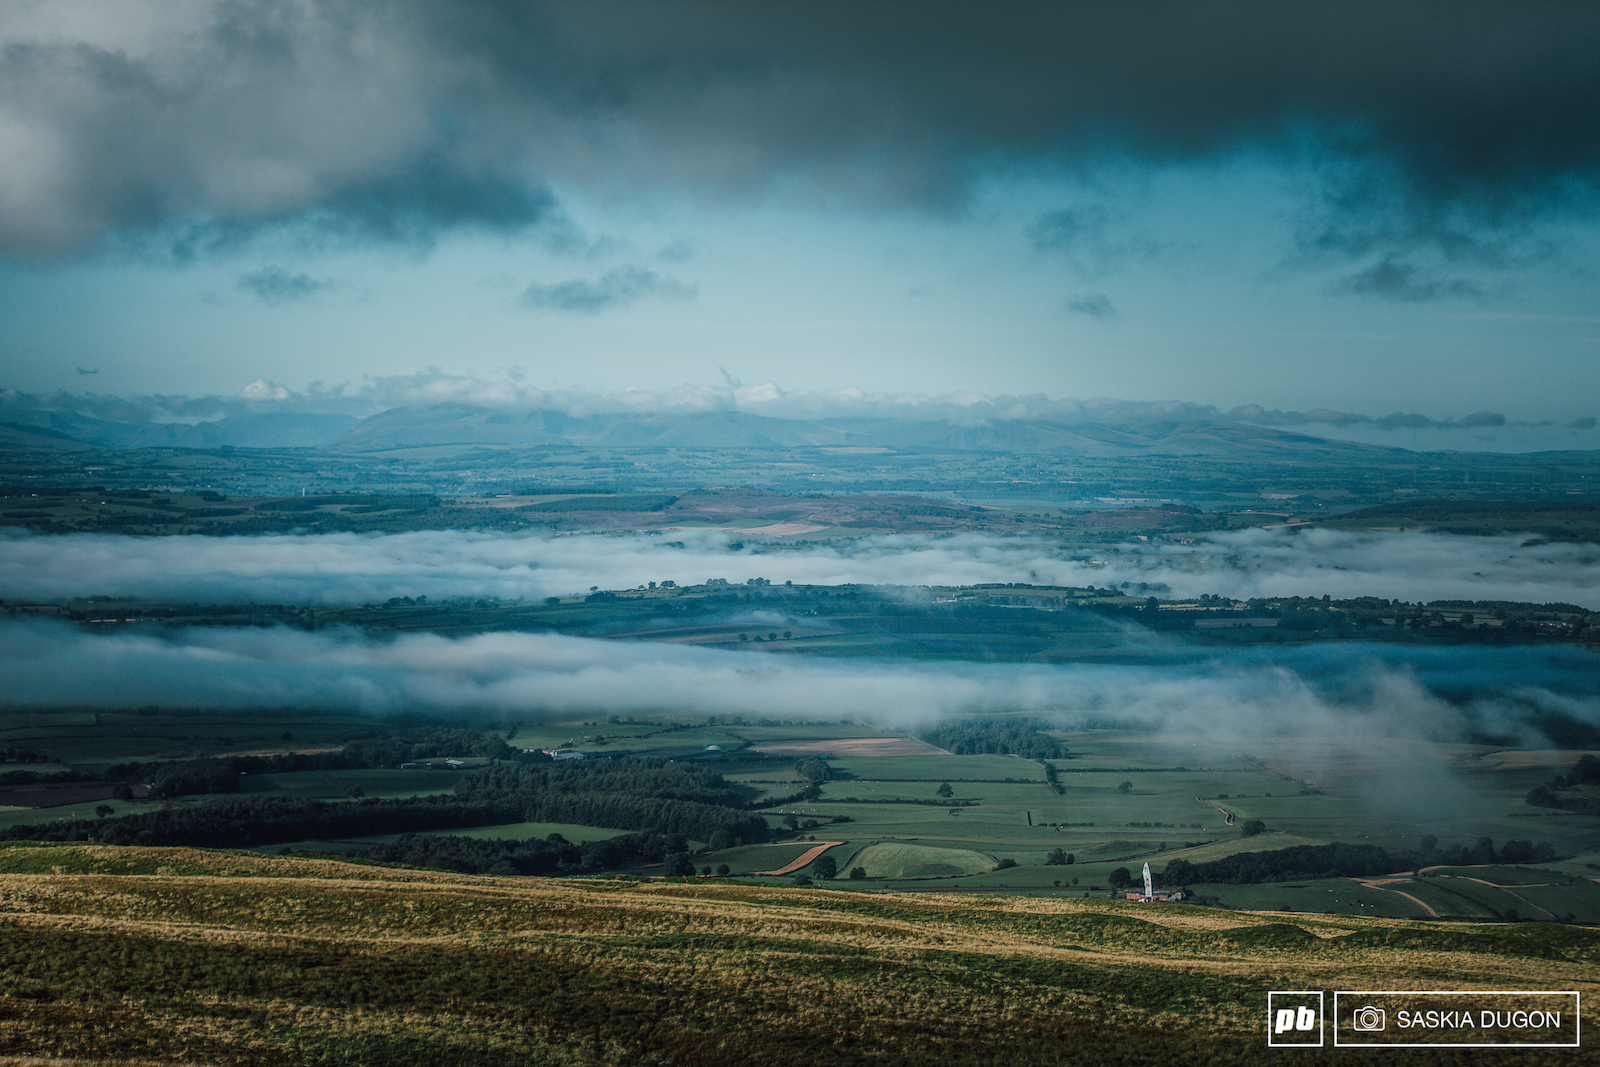 Race day fog and clouds over the Eden Valley before the sun broke through.